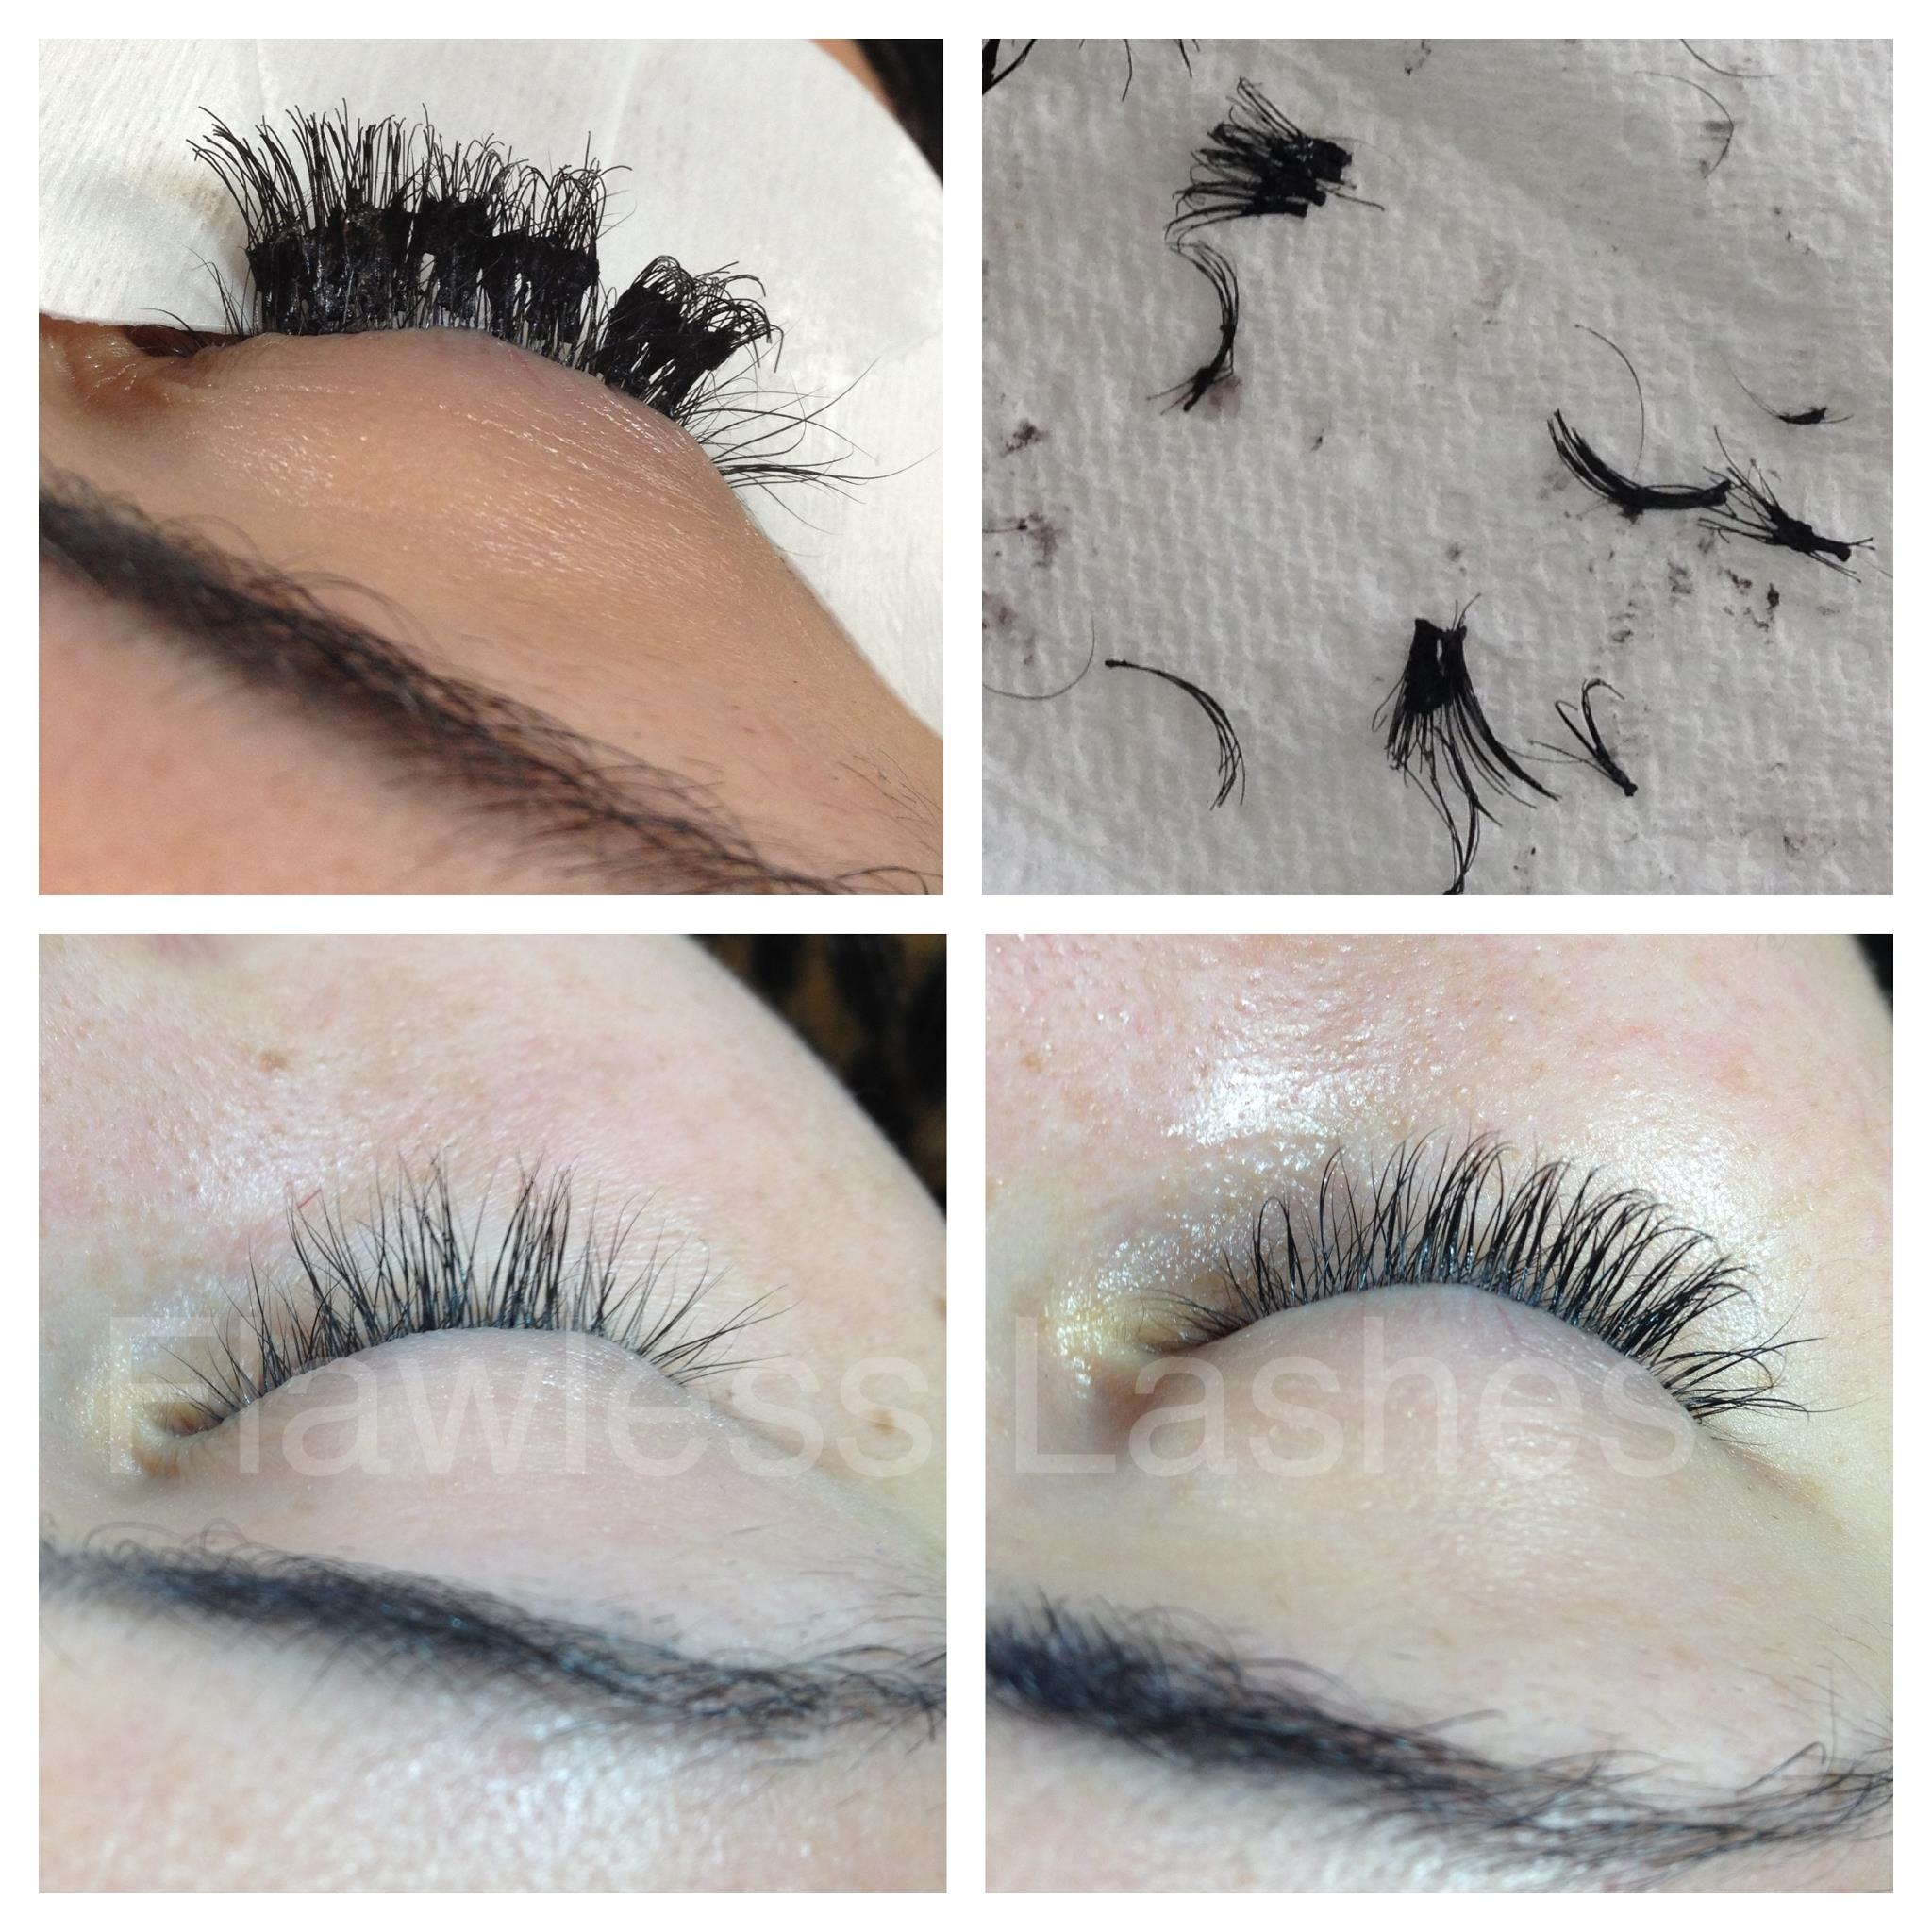 Eyelash Extensions Made My Real Lashes Fall Out